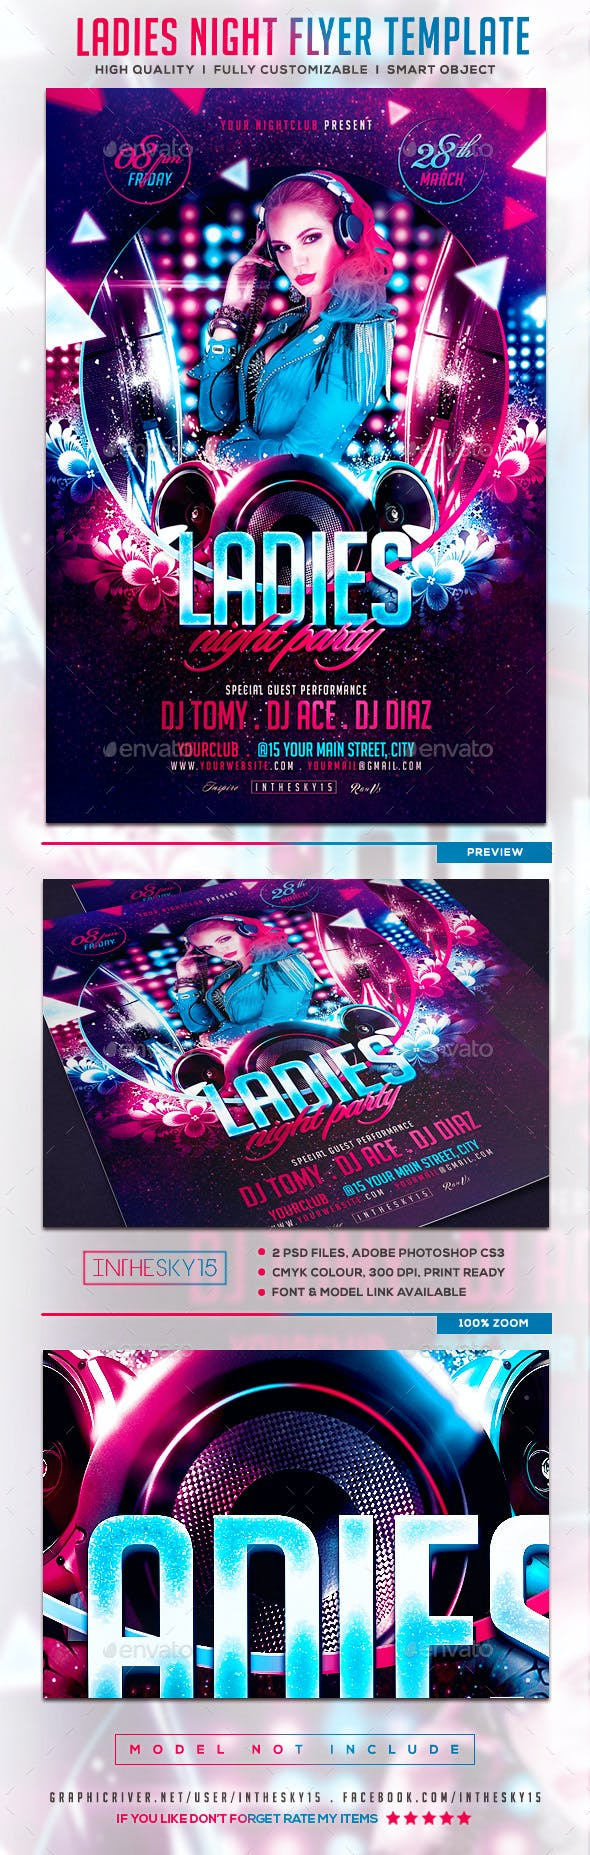 ladies night v2 flyer template by inthesky15 graphicriver